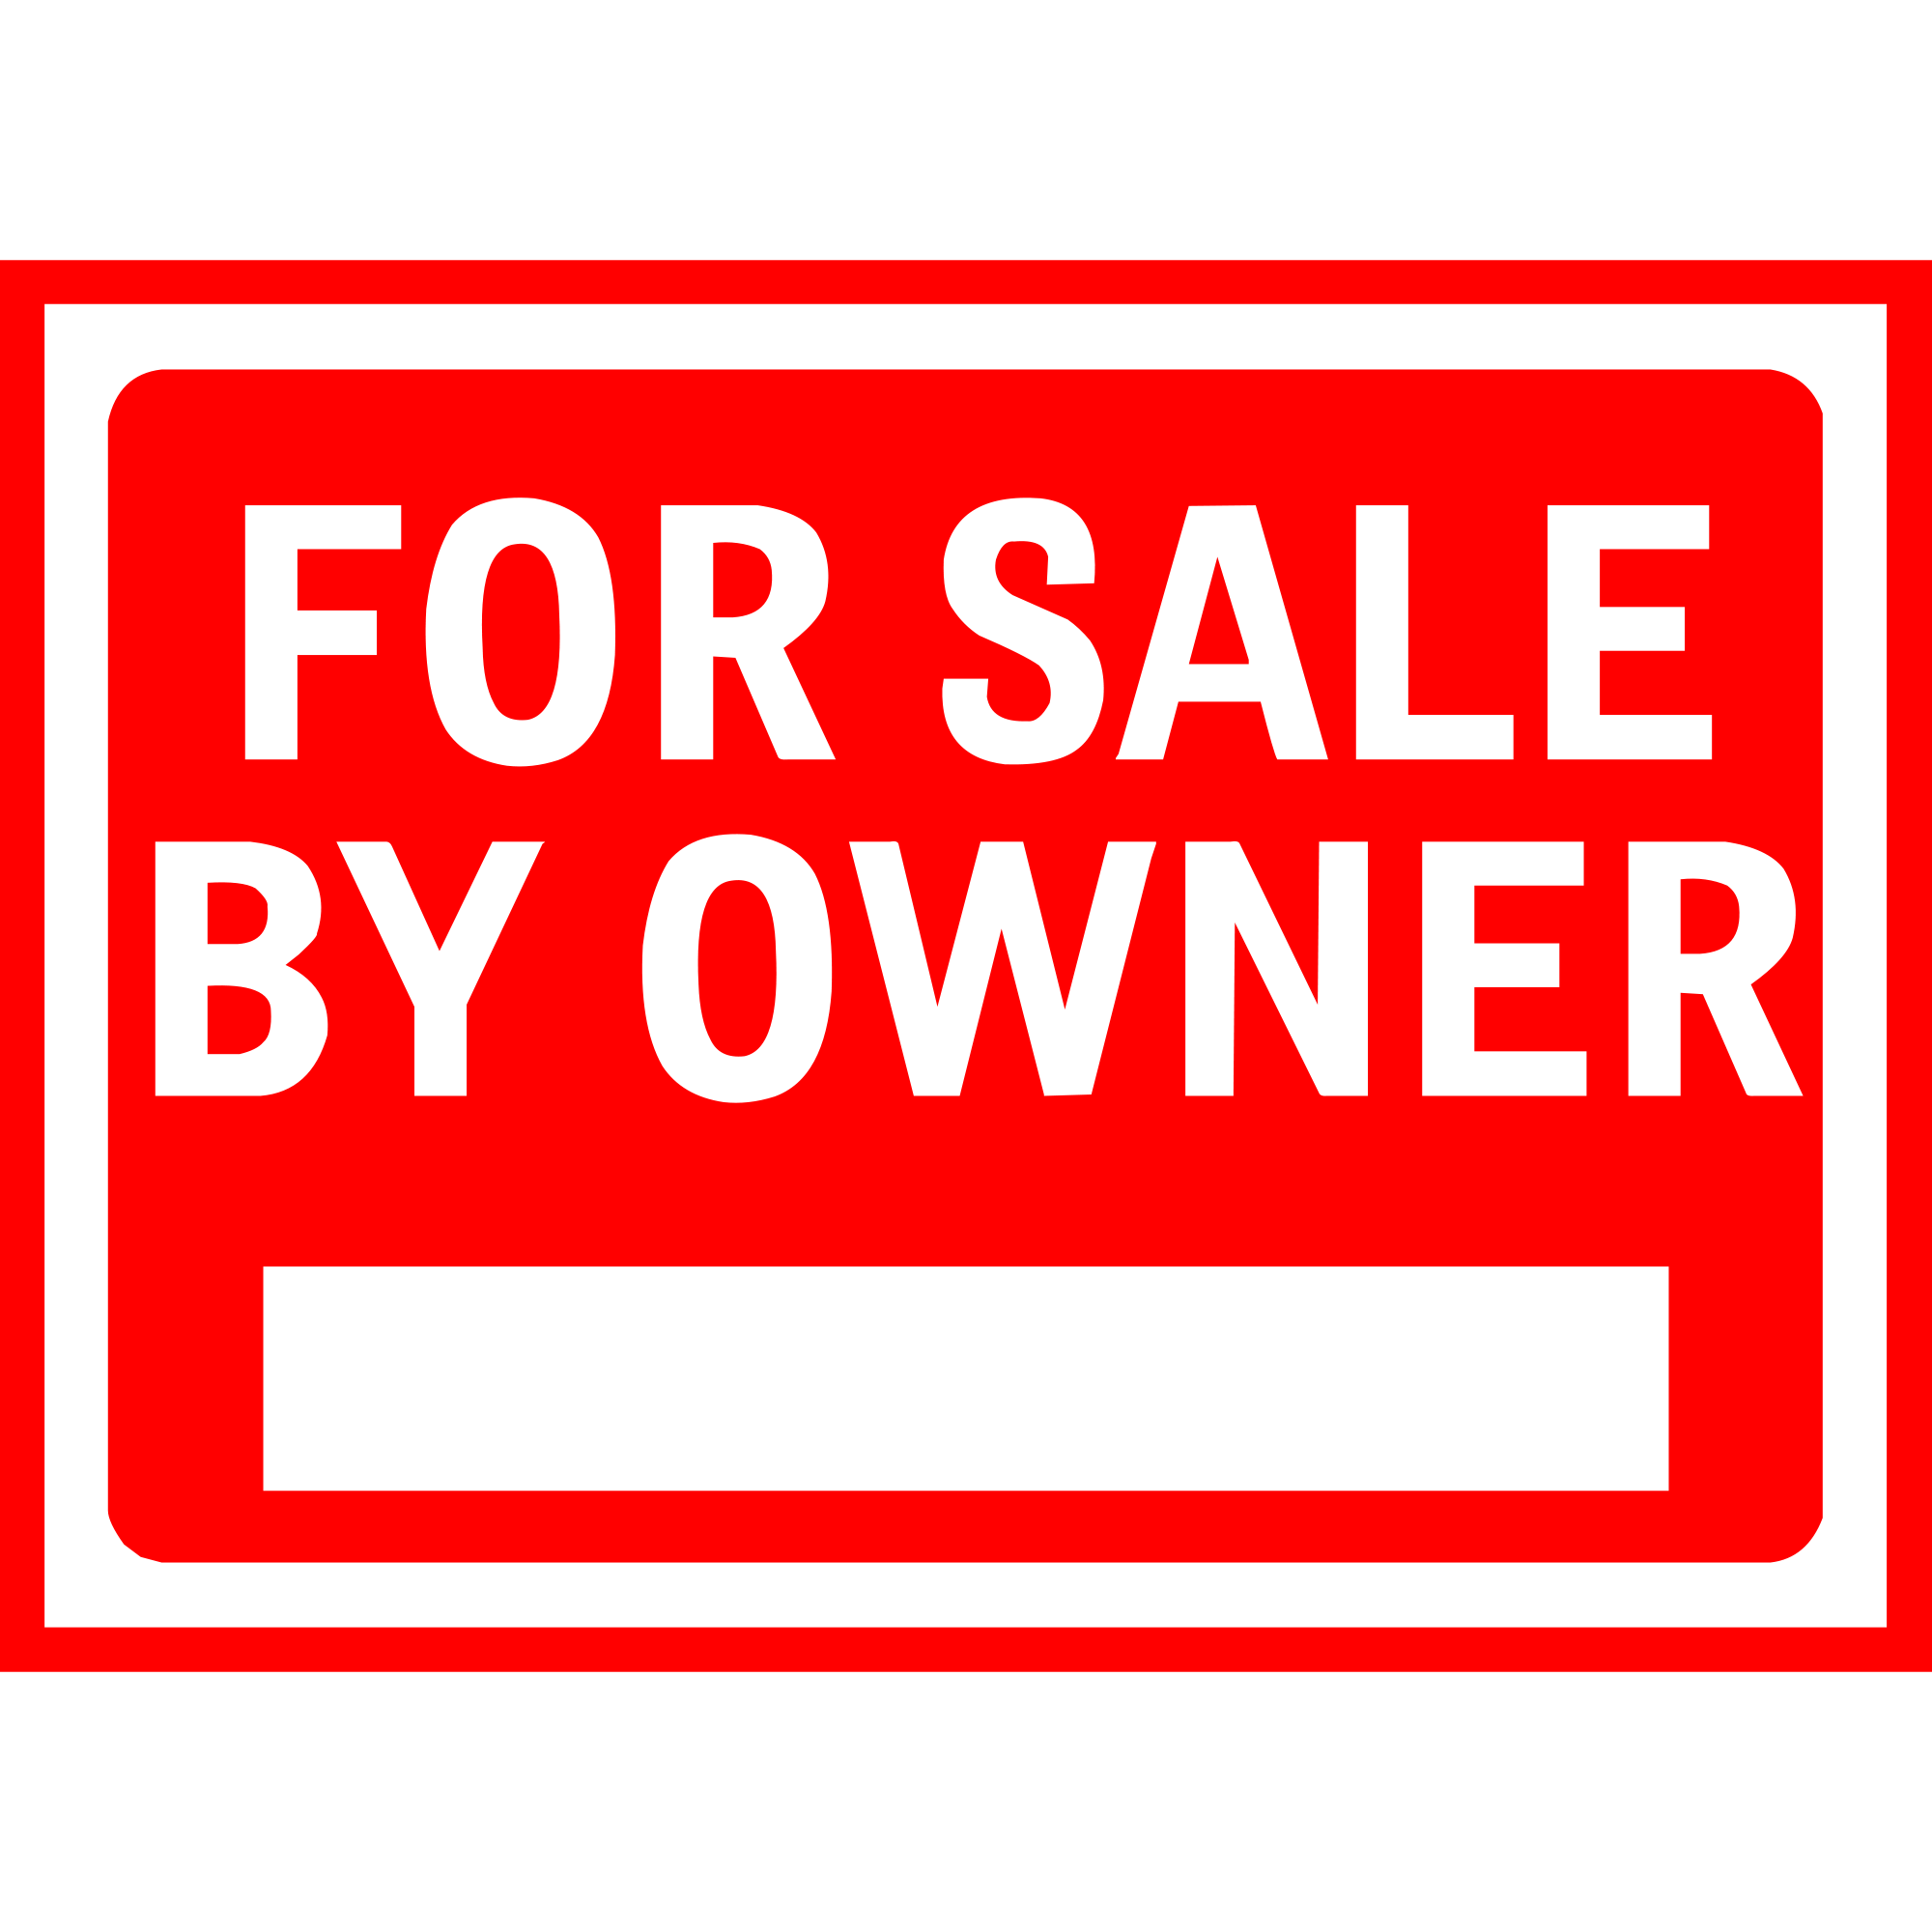 Sales vector sale sign. For by owner wikipedia